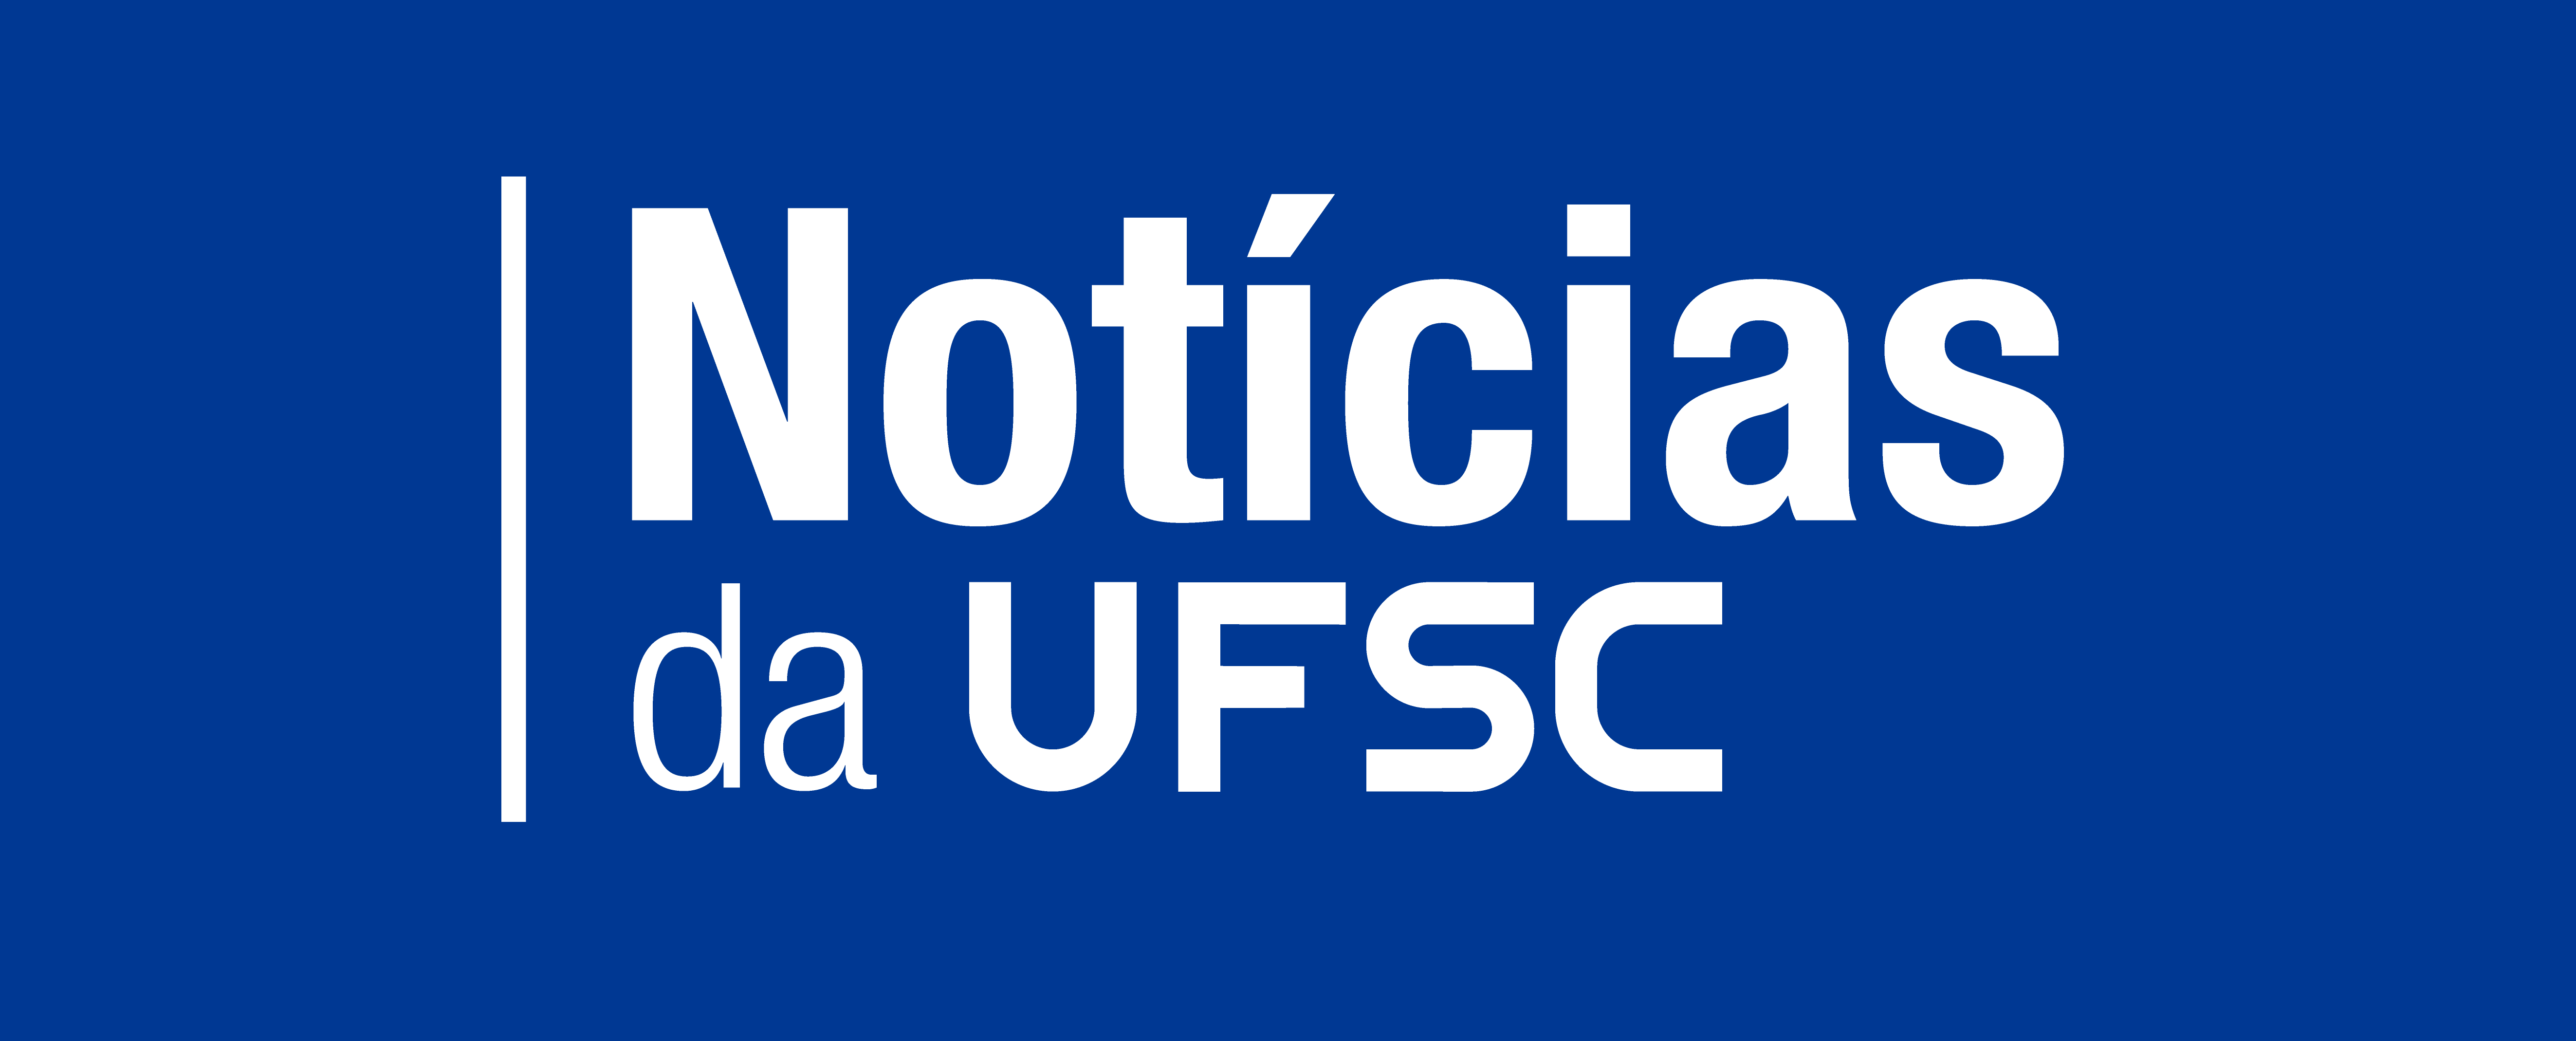 Notícias UFSC